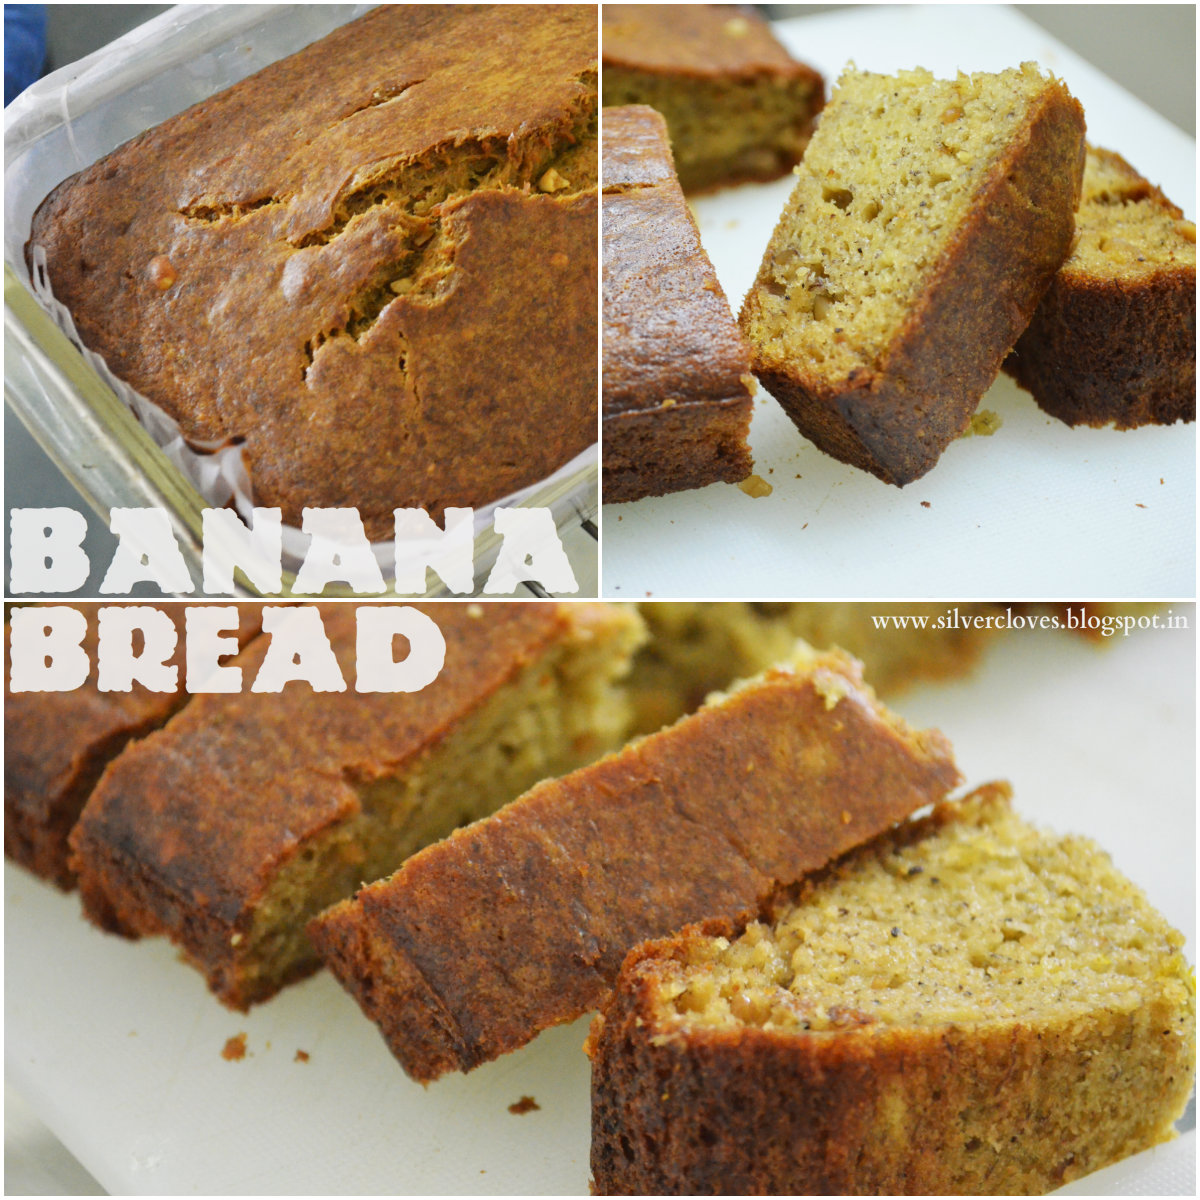 banana bread - the quick bread